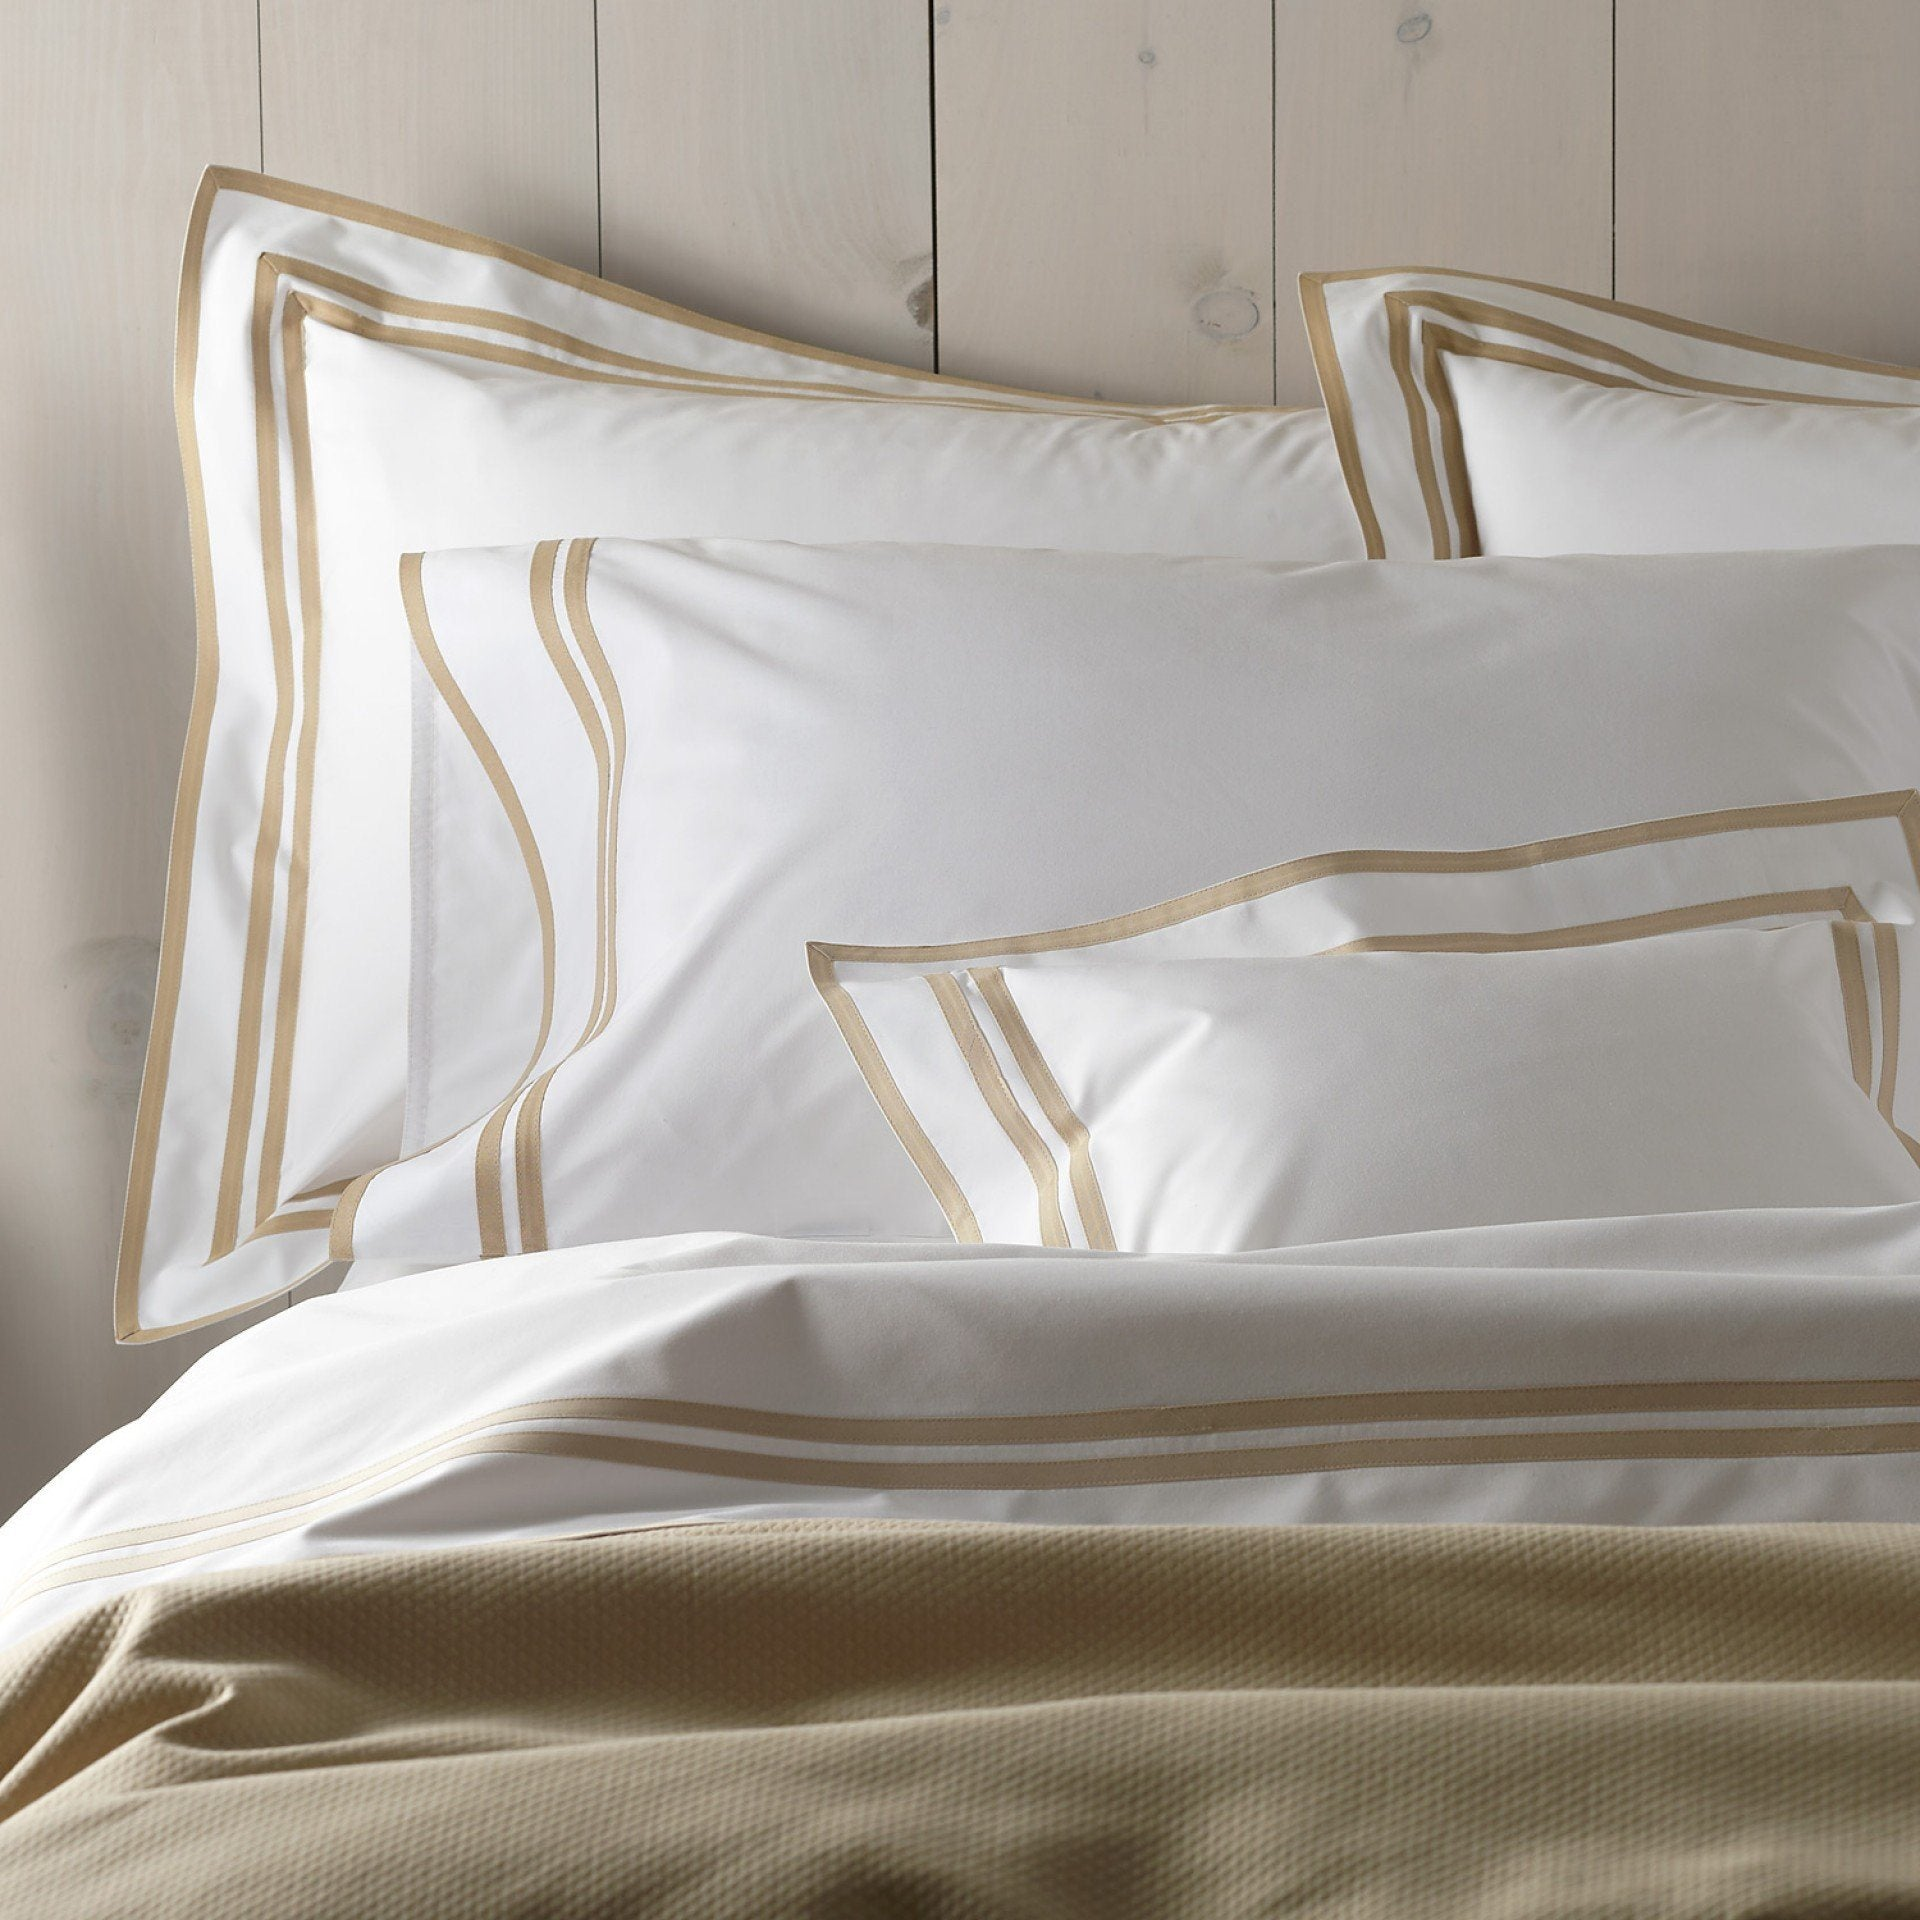 Meridian Bedding by Matouk - Fig Linens and Home